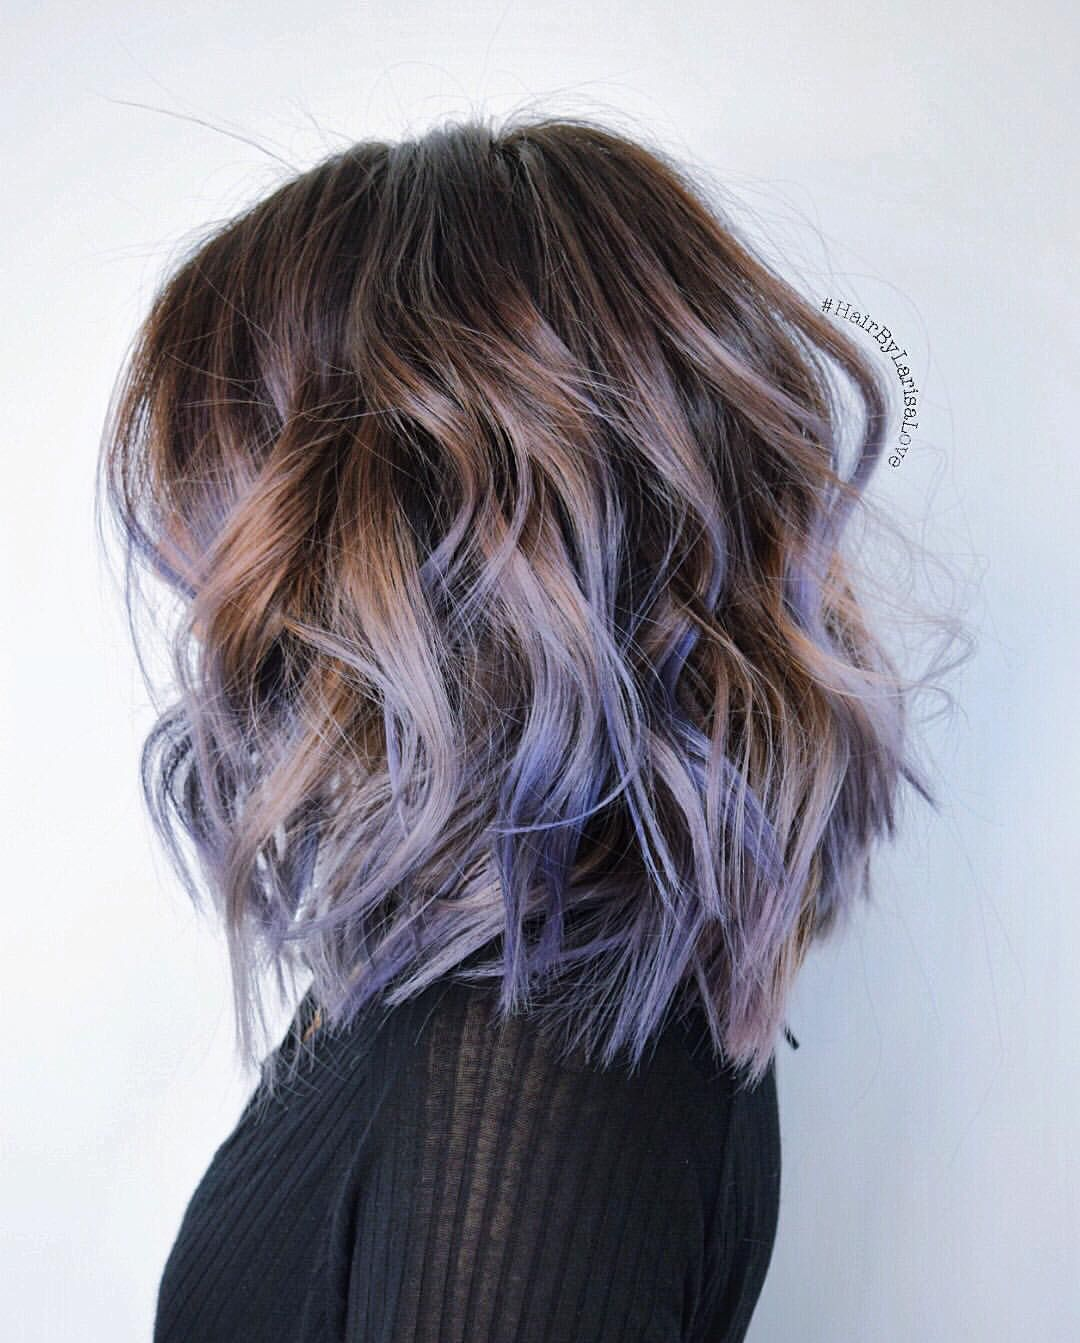 18 beautiful blue ombre colors and styles | curly lob, lob hair